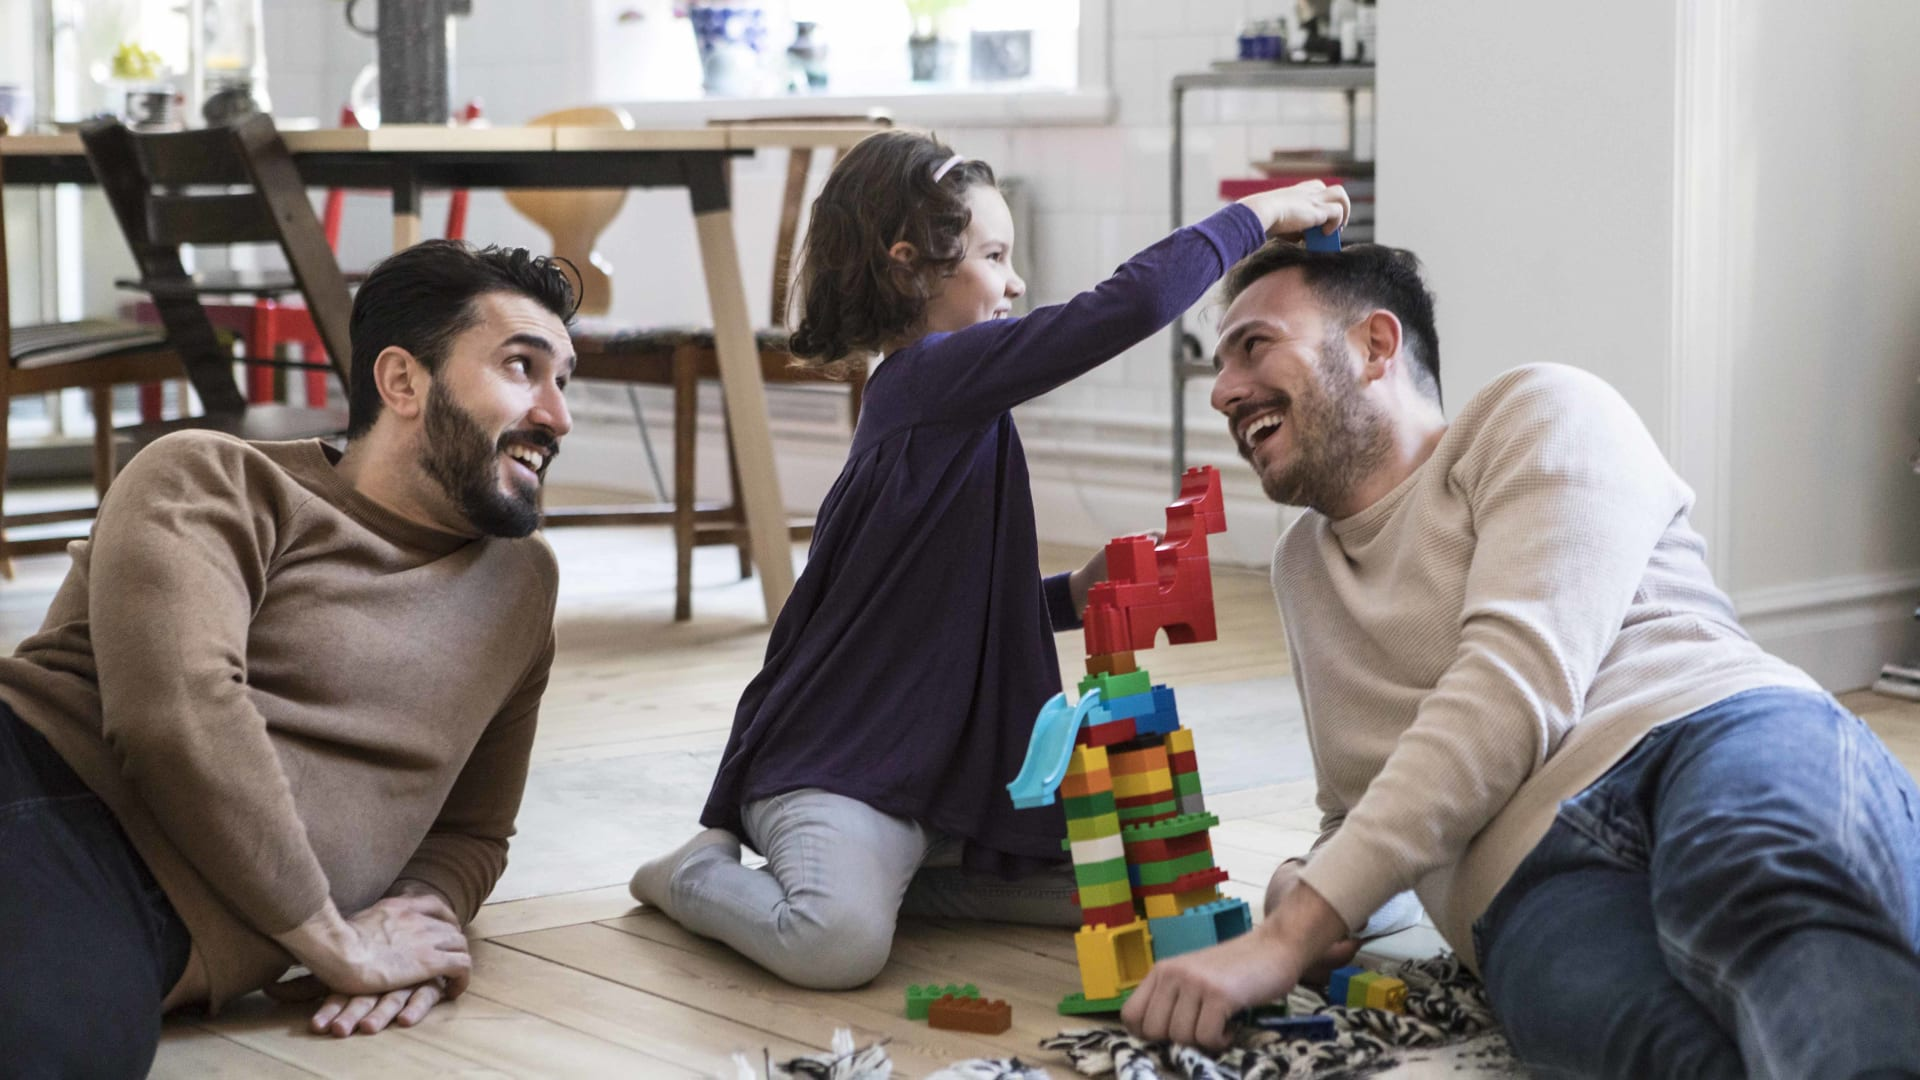 3 Meaningful Ways to Support Working Parents During Covid